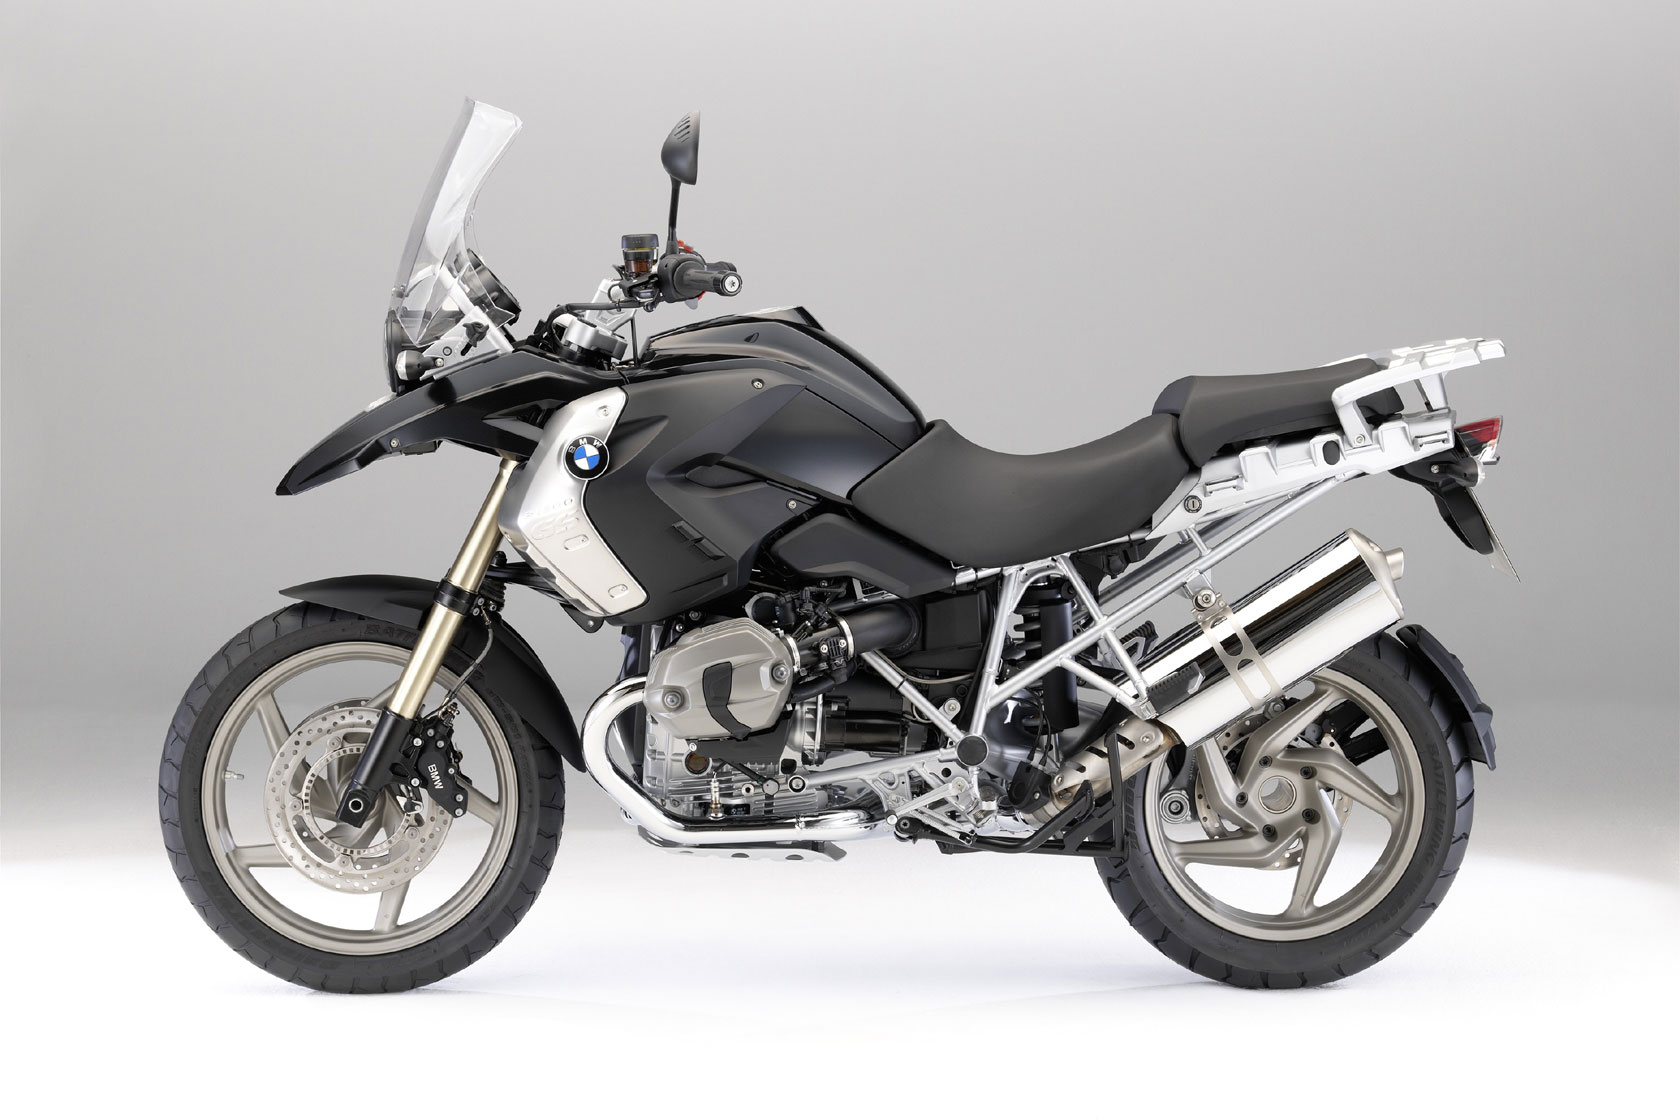 bmw r1200gs 2010 2013 dohc 81kw k25. Black Bedroom Furniture Sets. Home Design Ideas